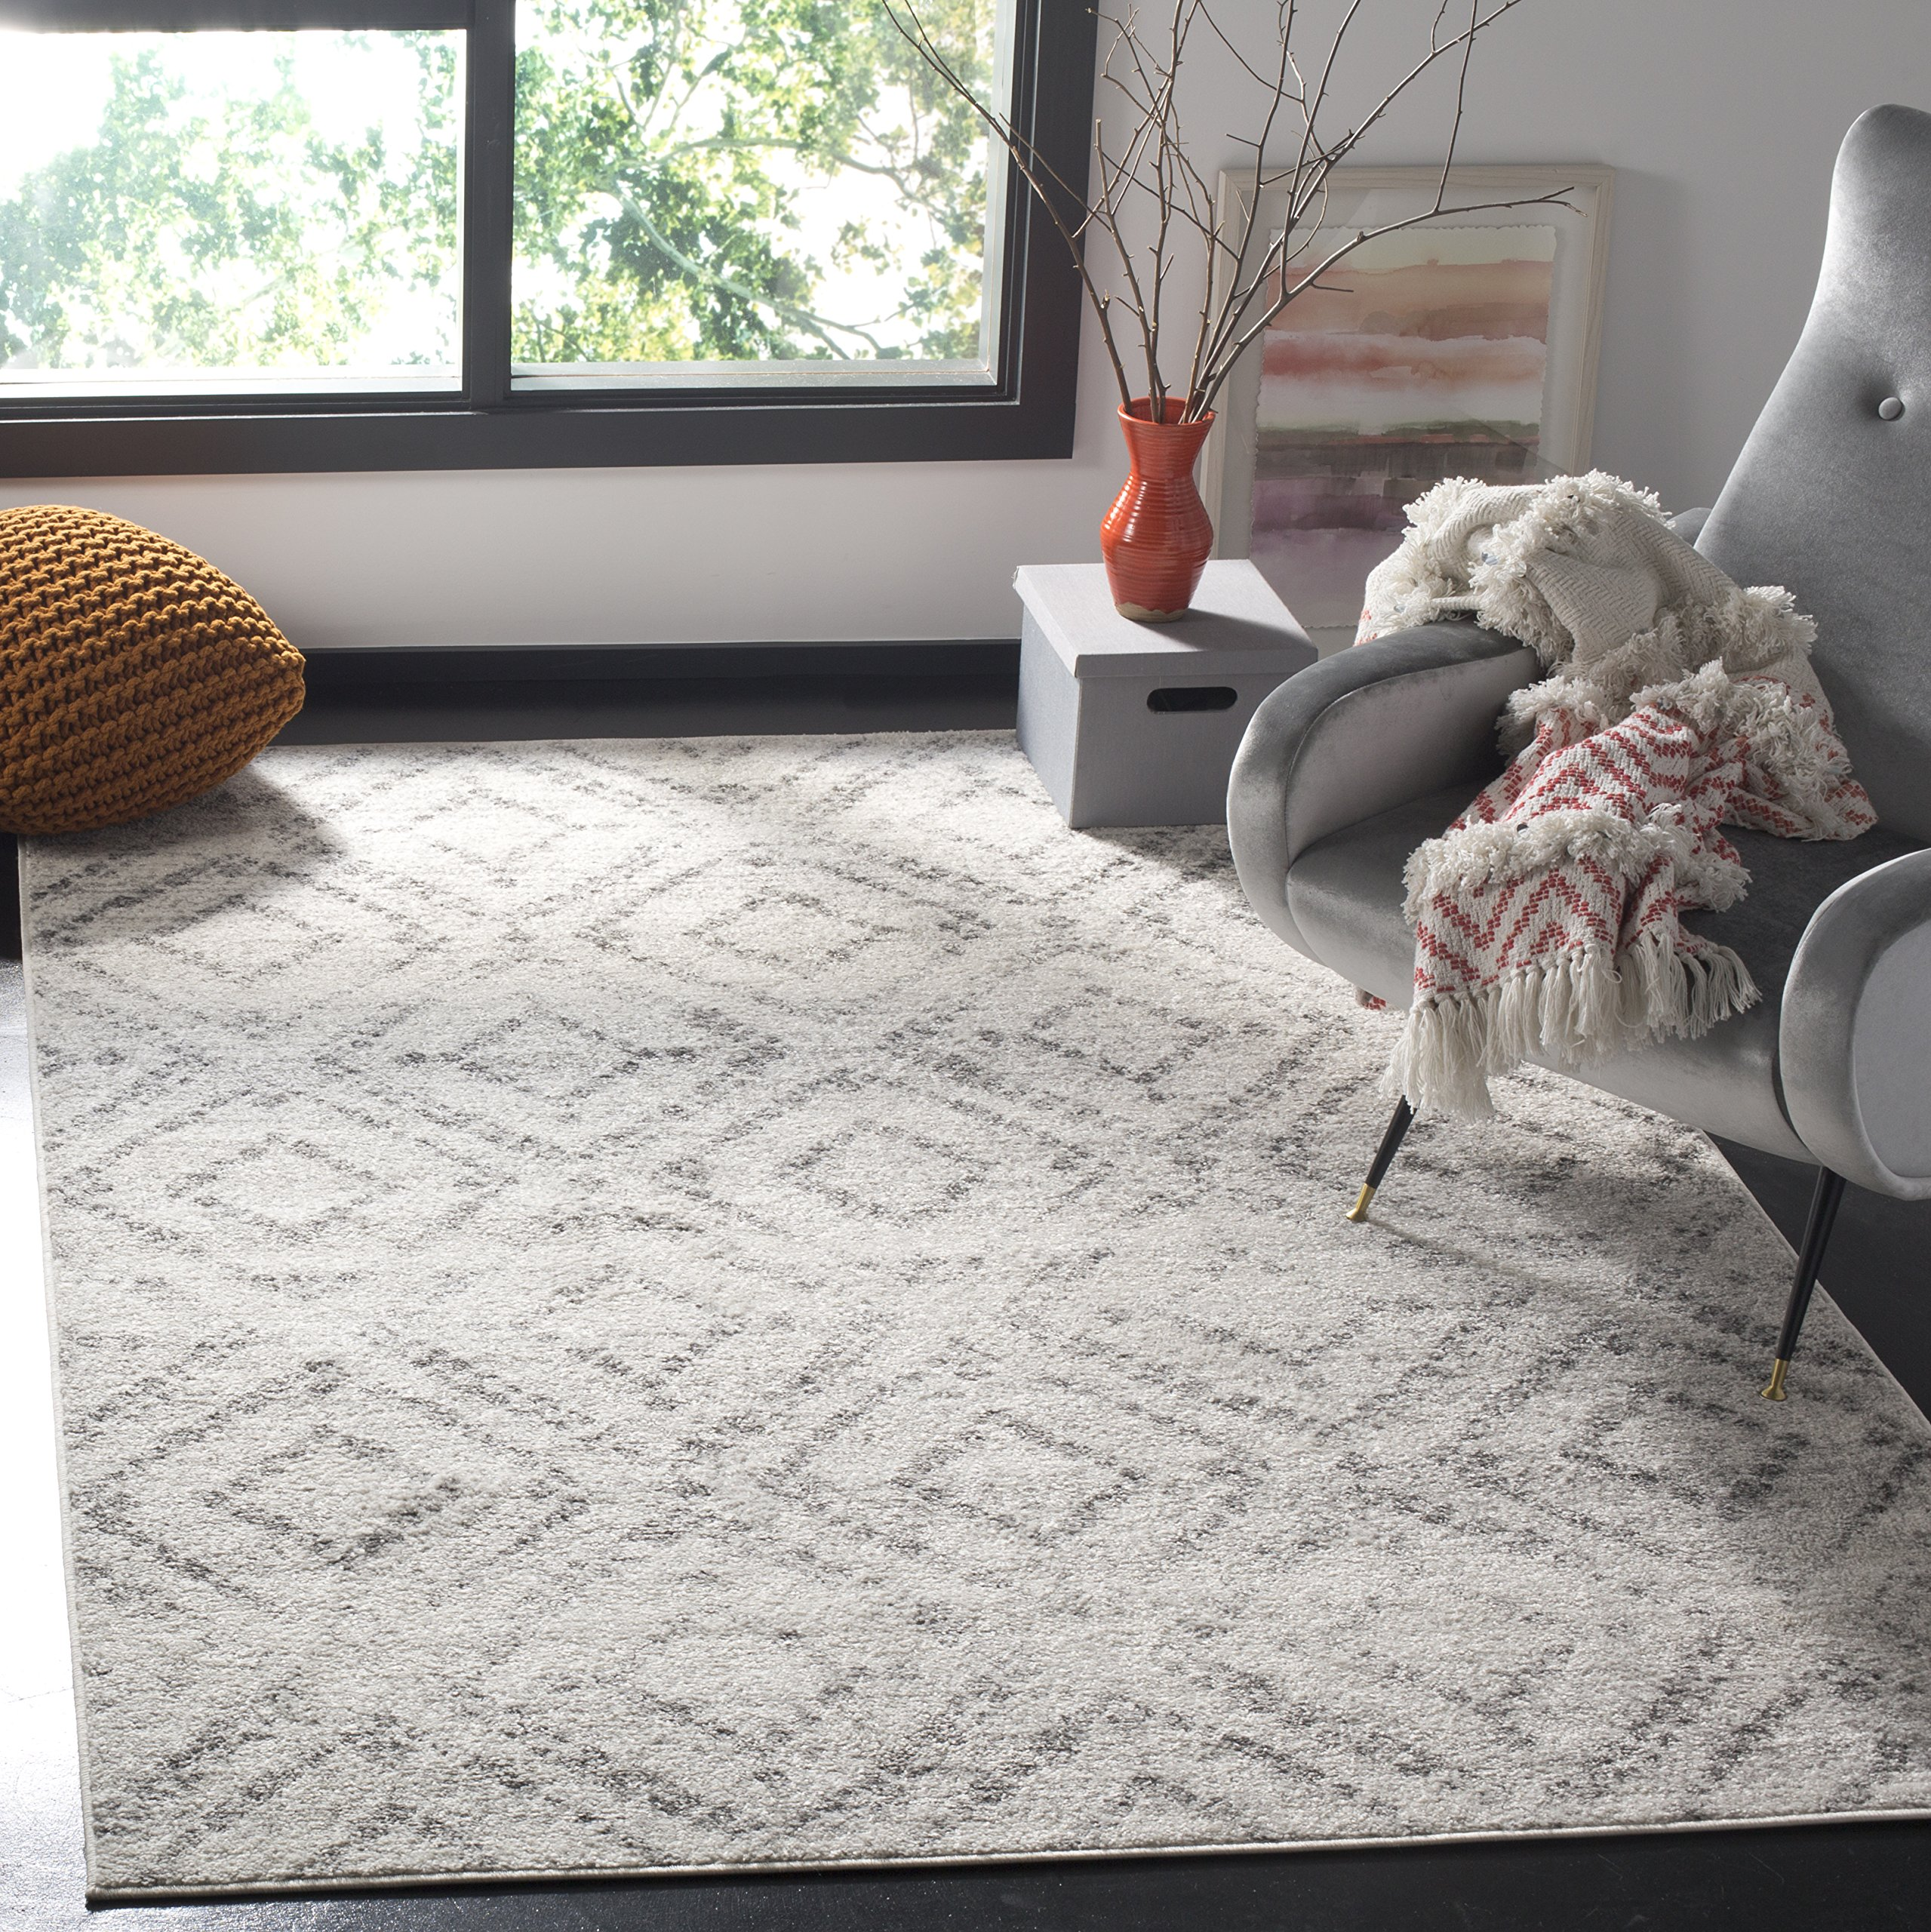 Safavieh Adirondack Collection ADR131C Light Grey Vintage Geometric Area Rug (6' x 9') by Safavieh